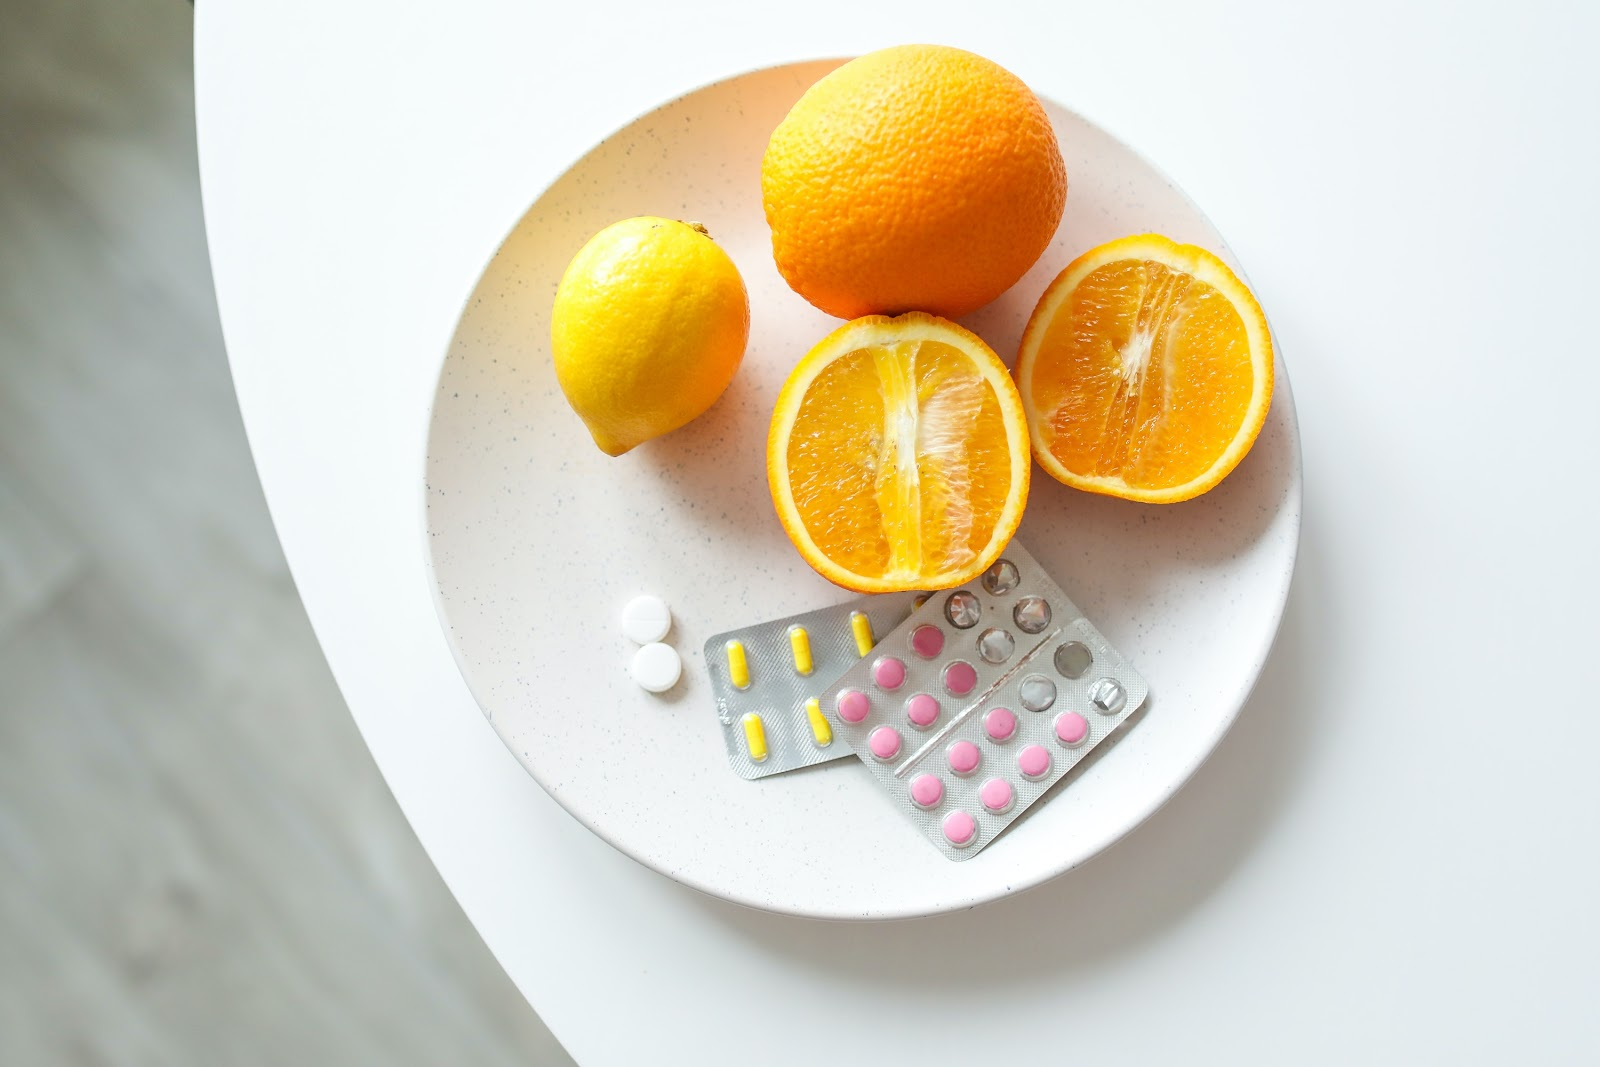 Slice and unsliced orange, and  a lemon with a packet of pills on a white plate